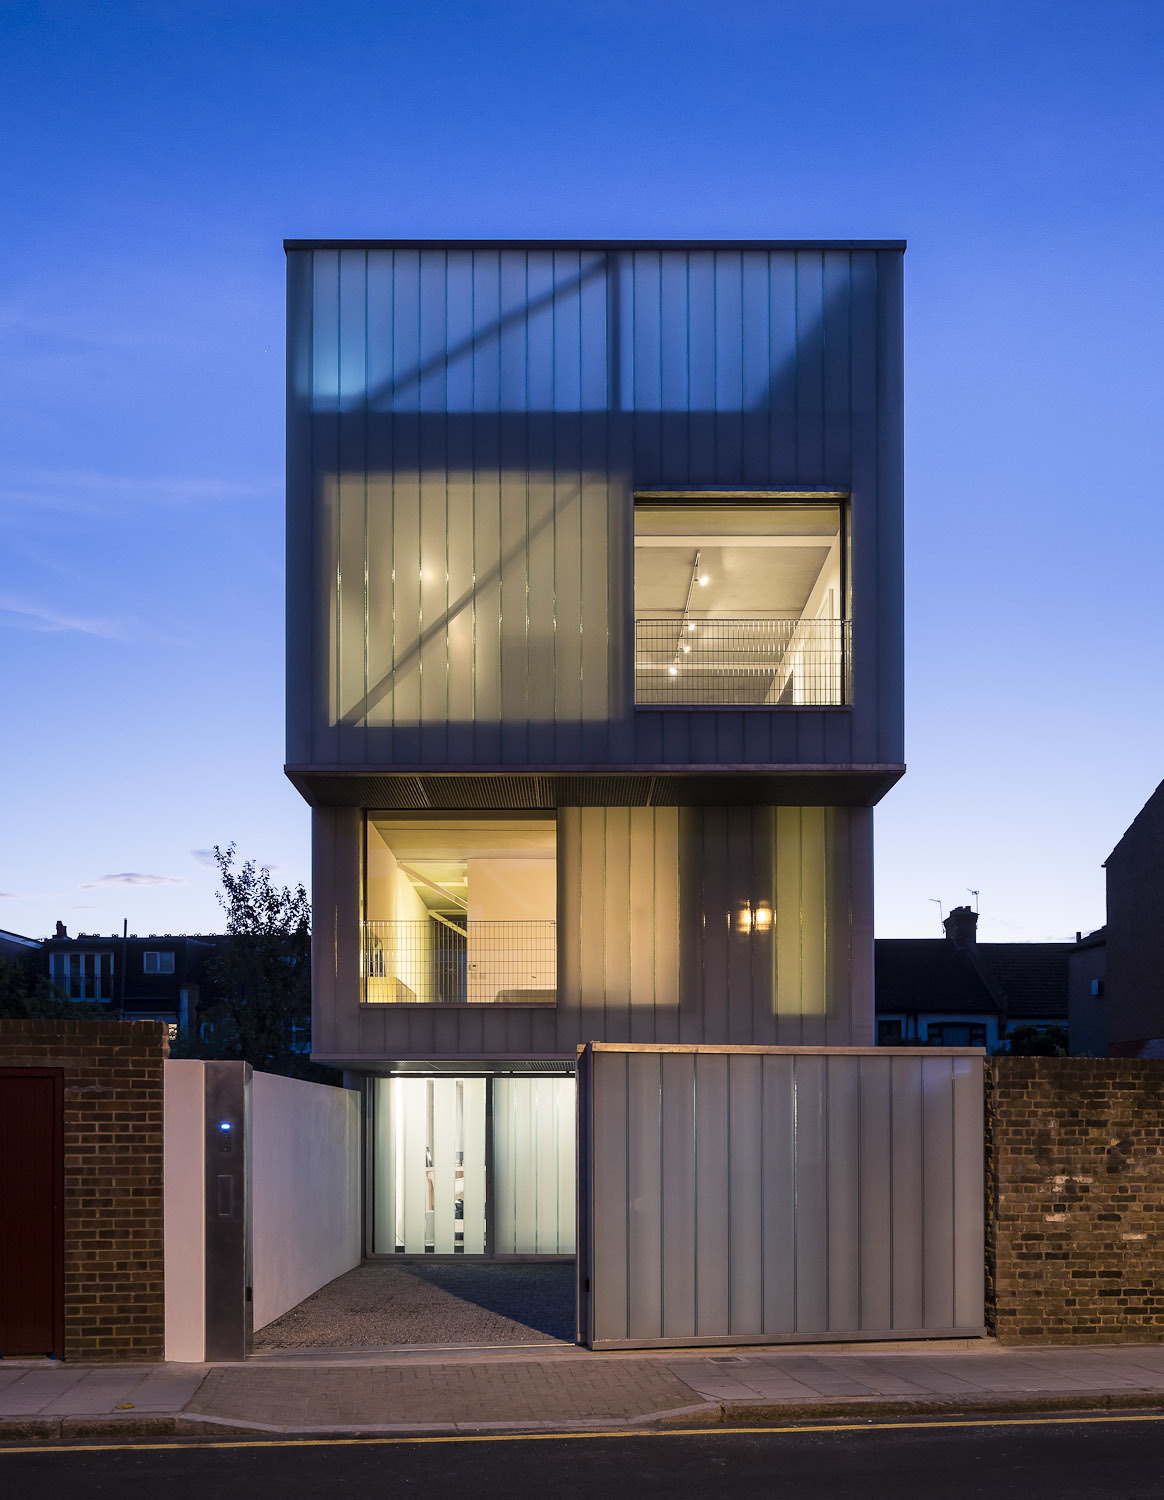 Slip house carl turner architects archinect for The best architecture firms in london